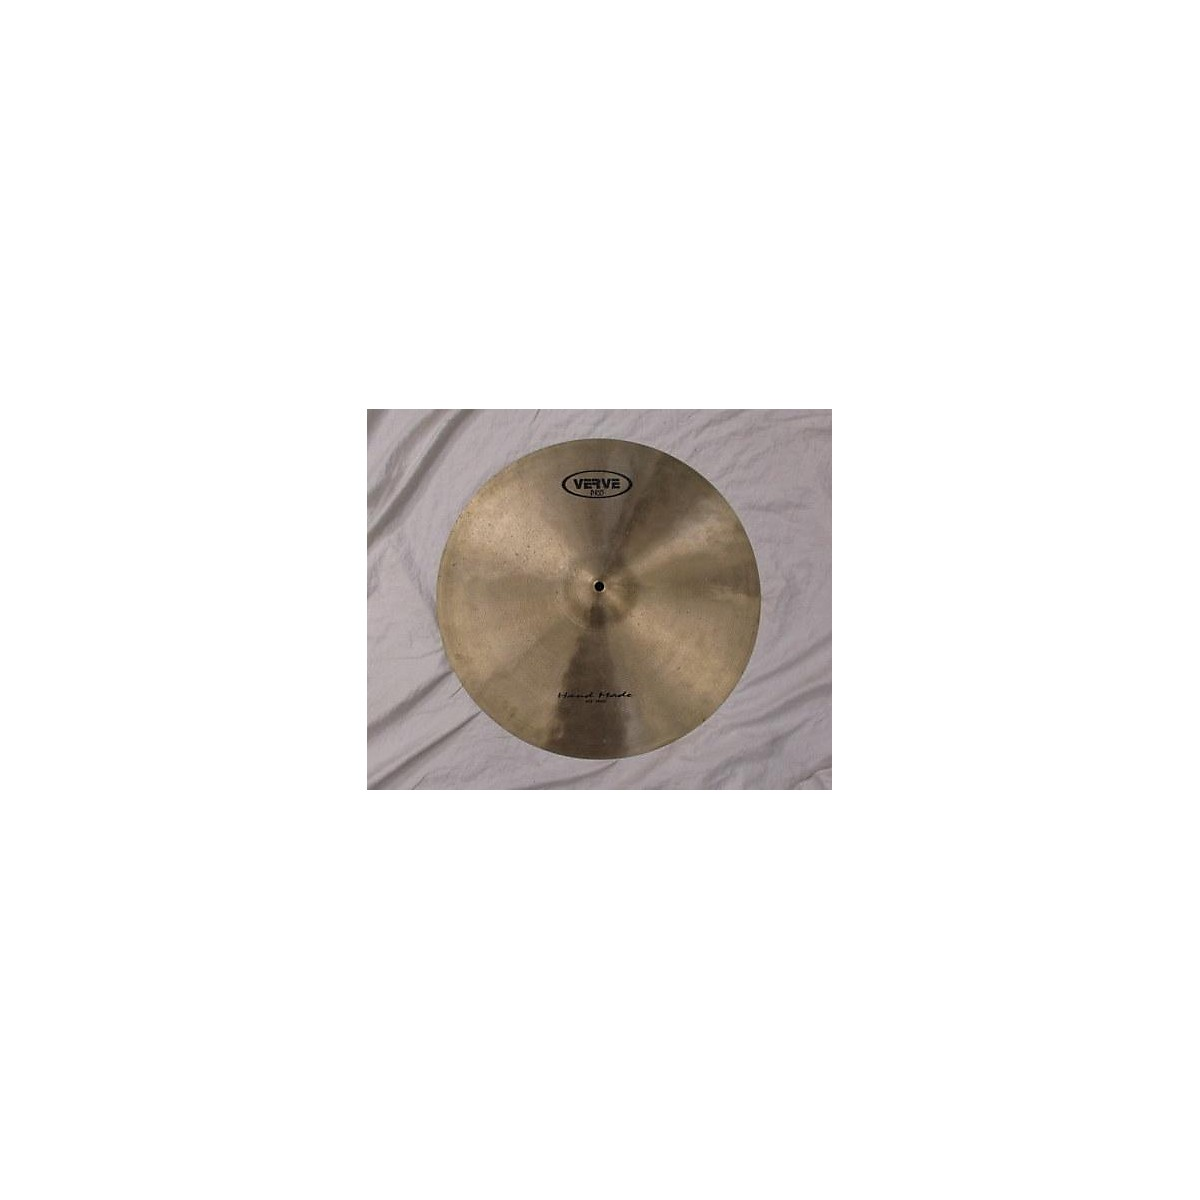 Verve 20in Handmade Cymbal